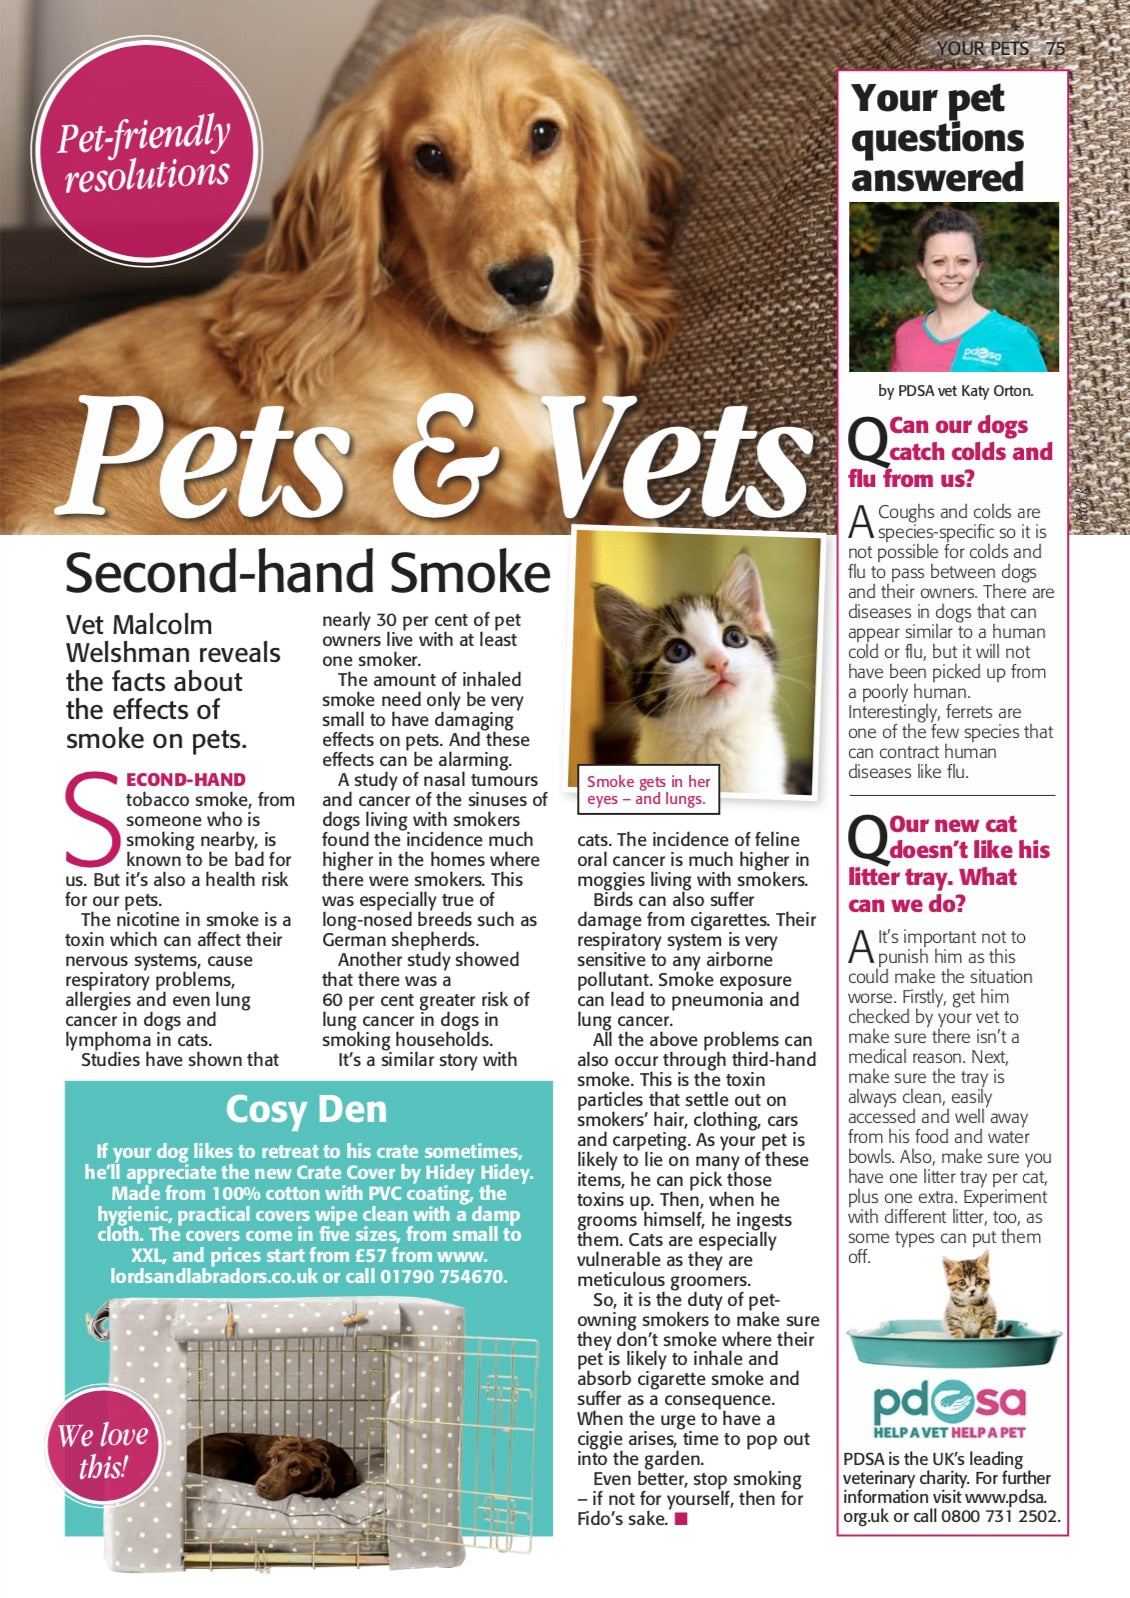 Pets & Vets magazine article featuring Lords & Labradors